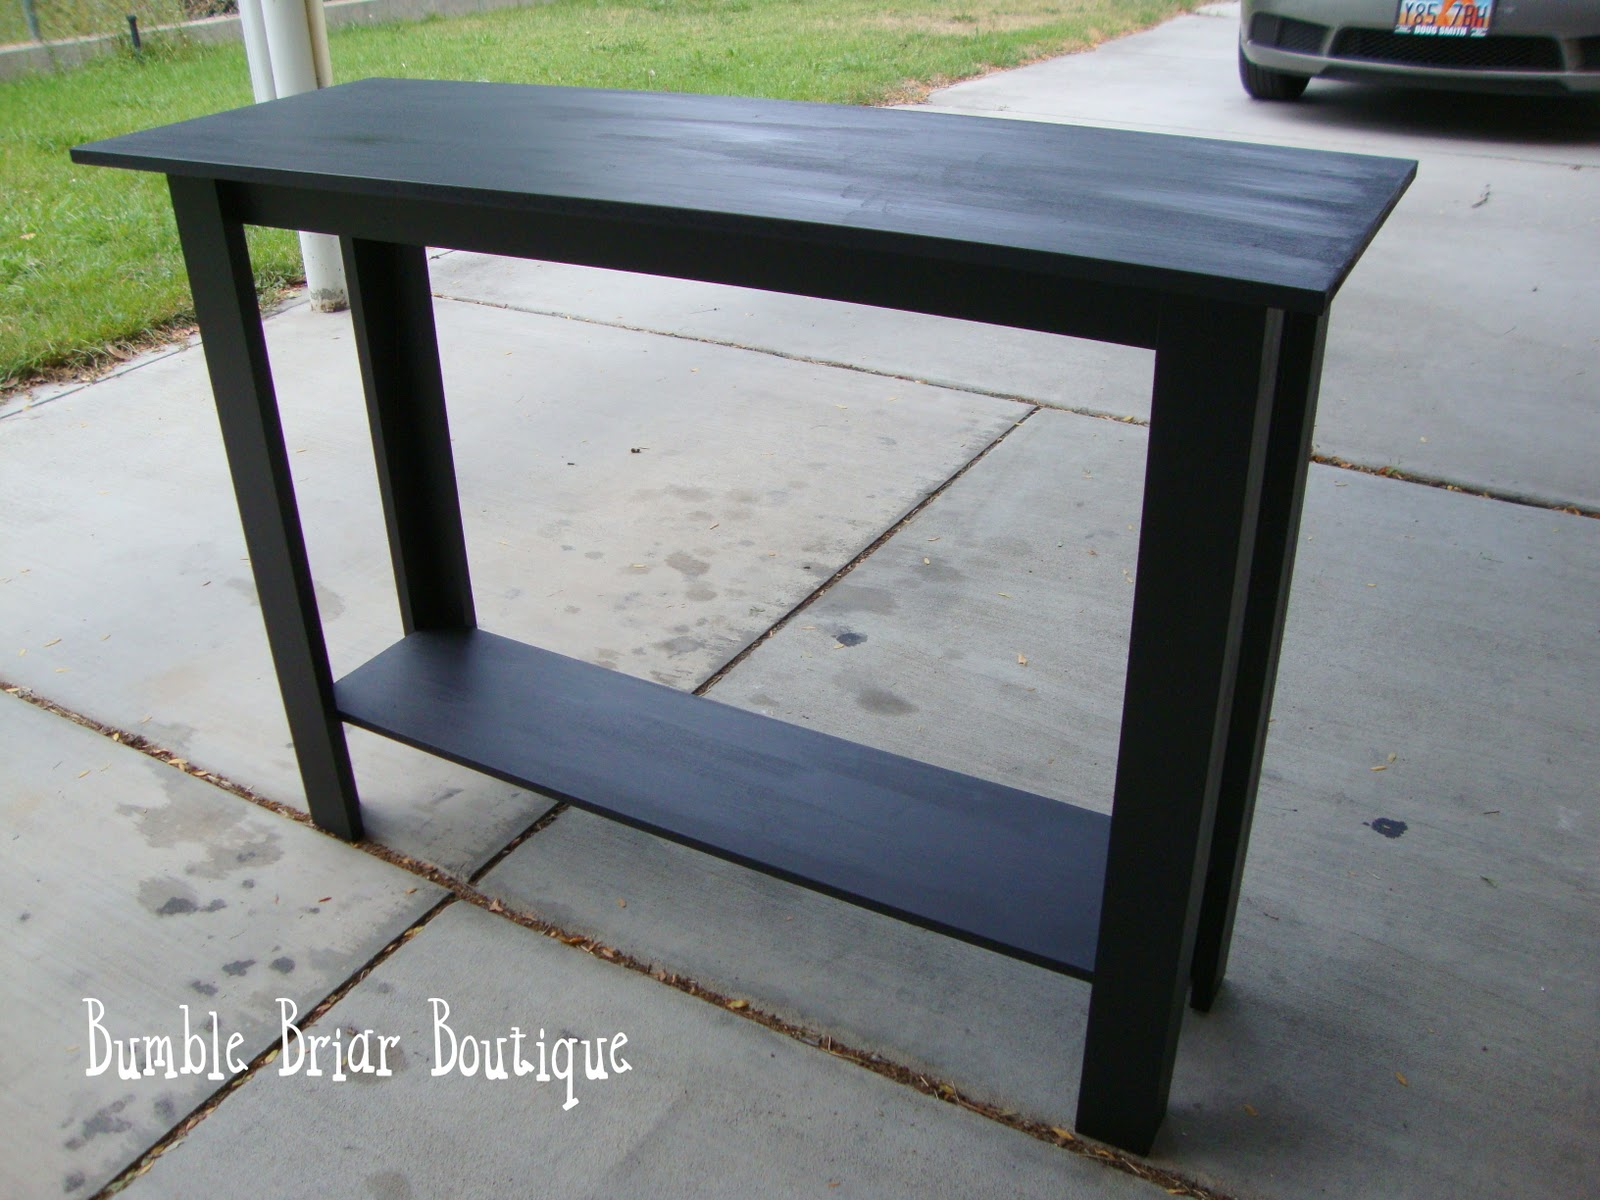 Building A Sofa Table Haverty Reviews Bumble Briar Boutique How To Build